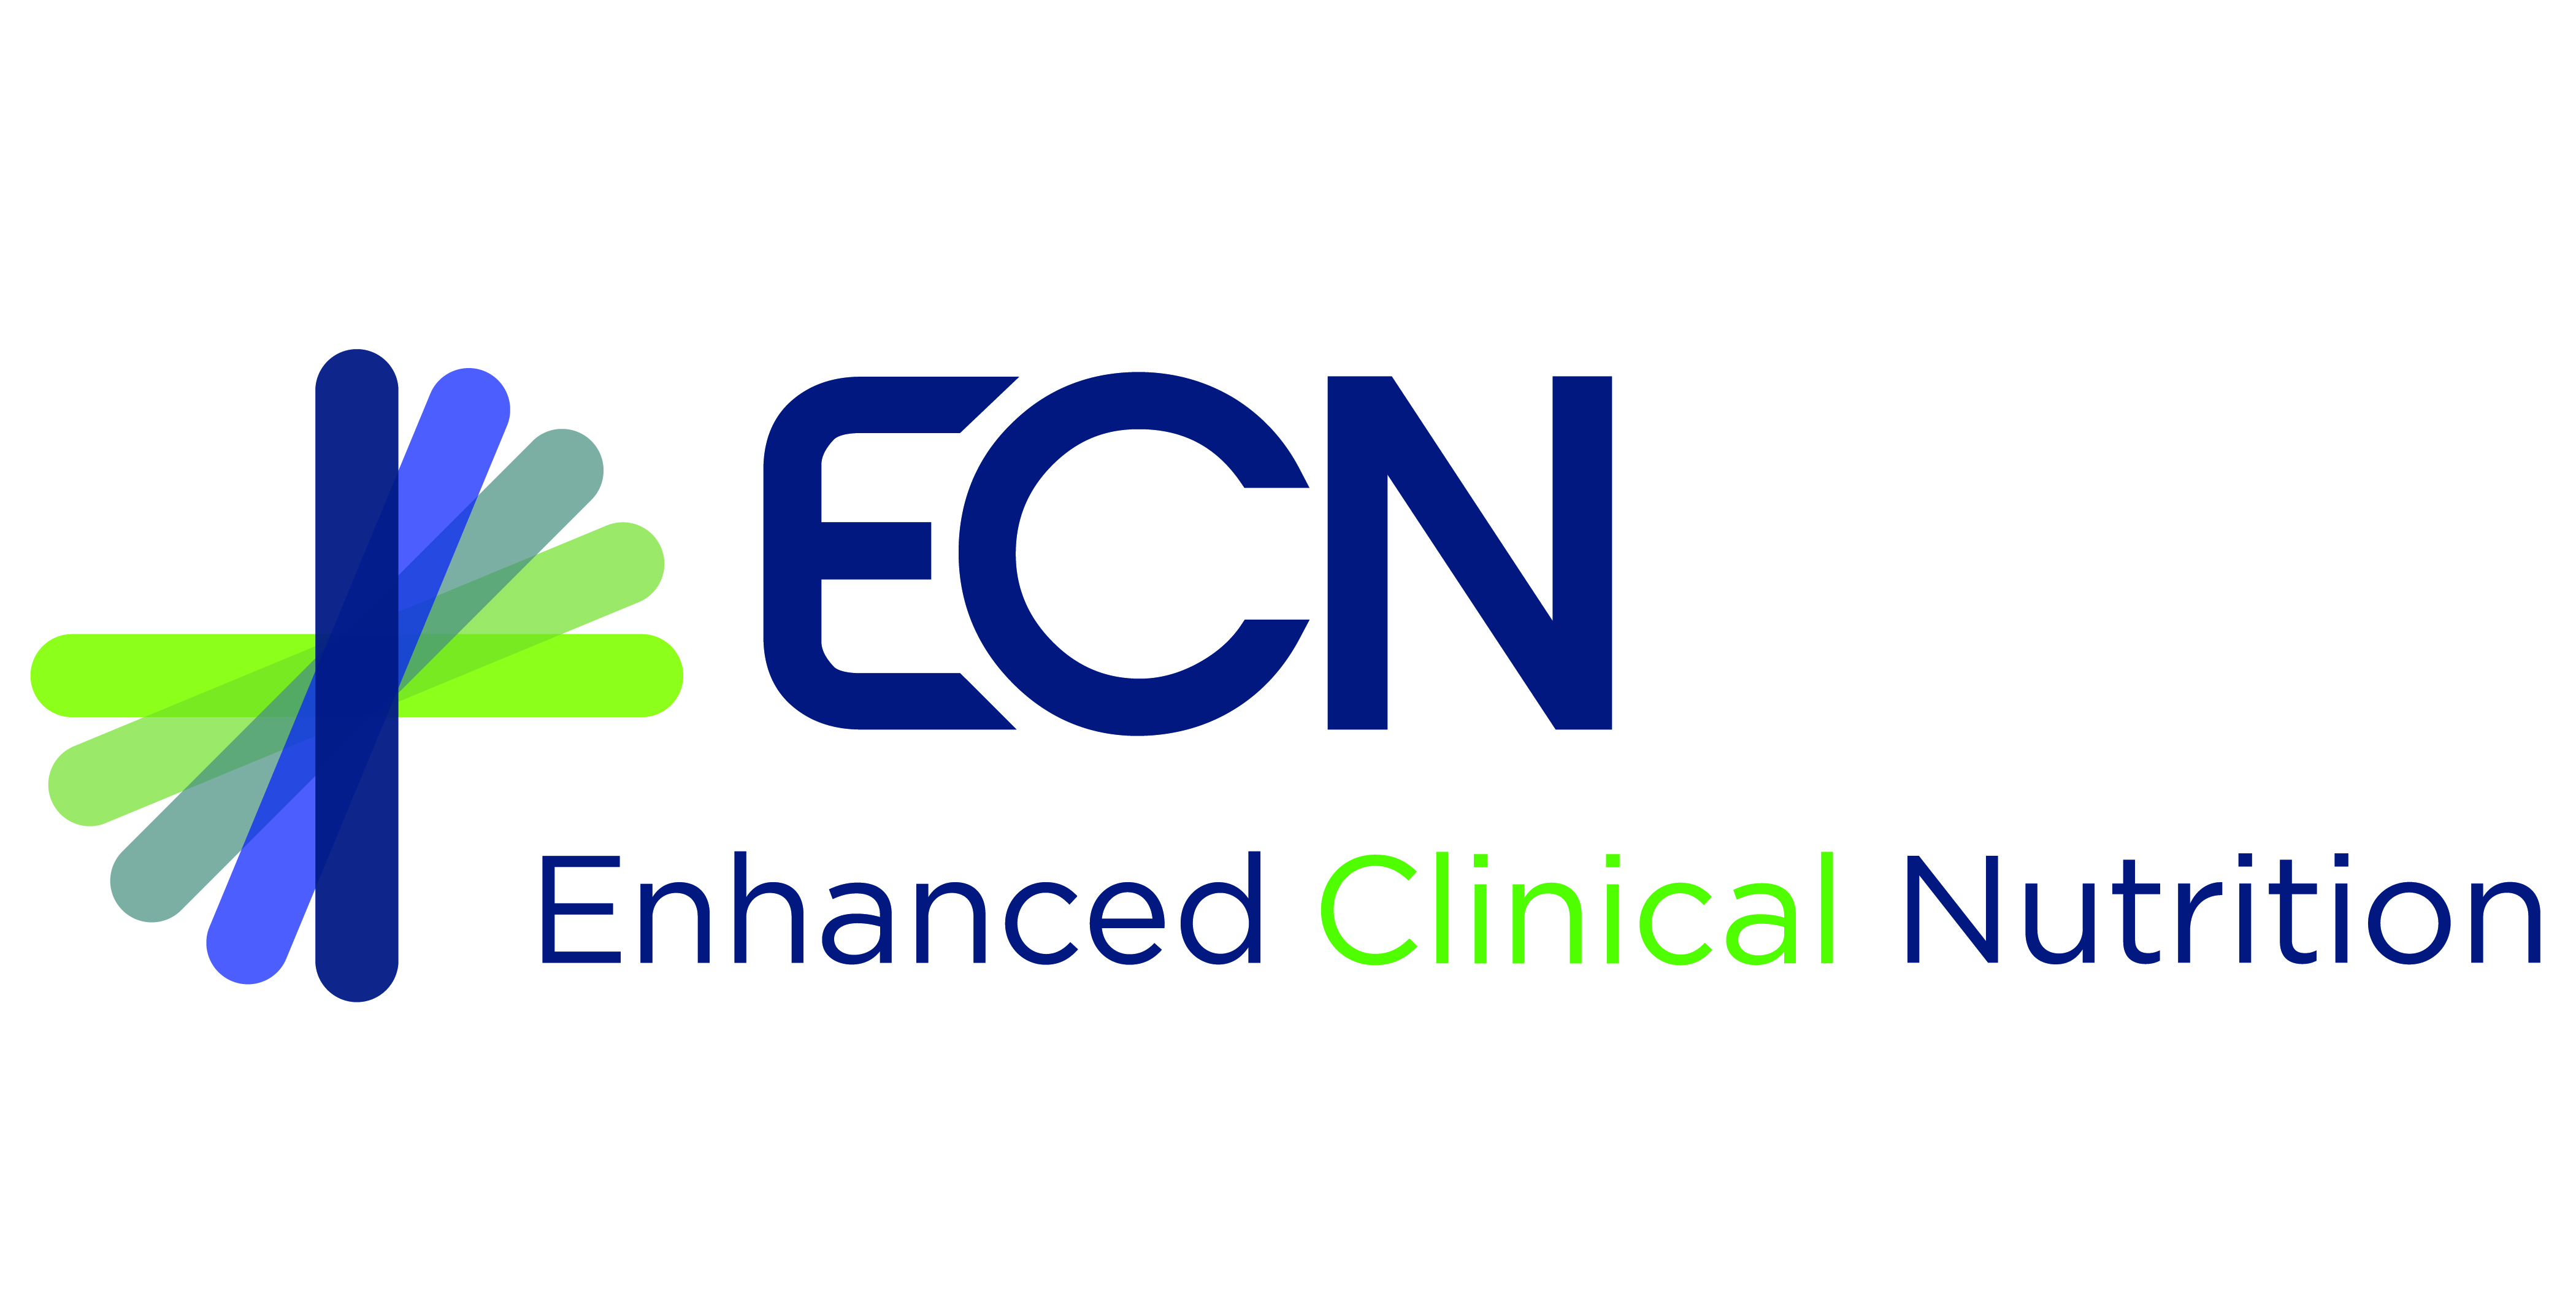 Enhanced Clinical Nutrition